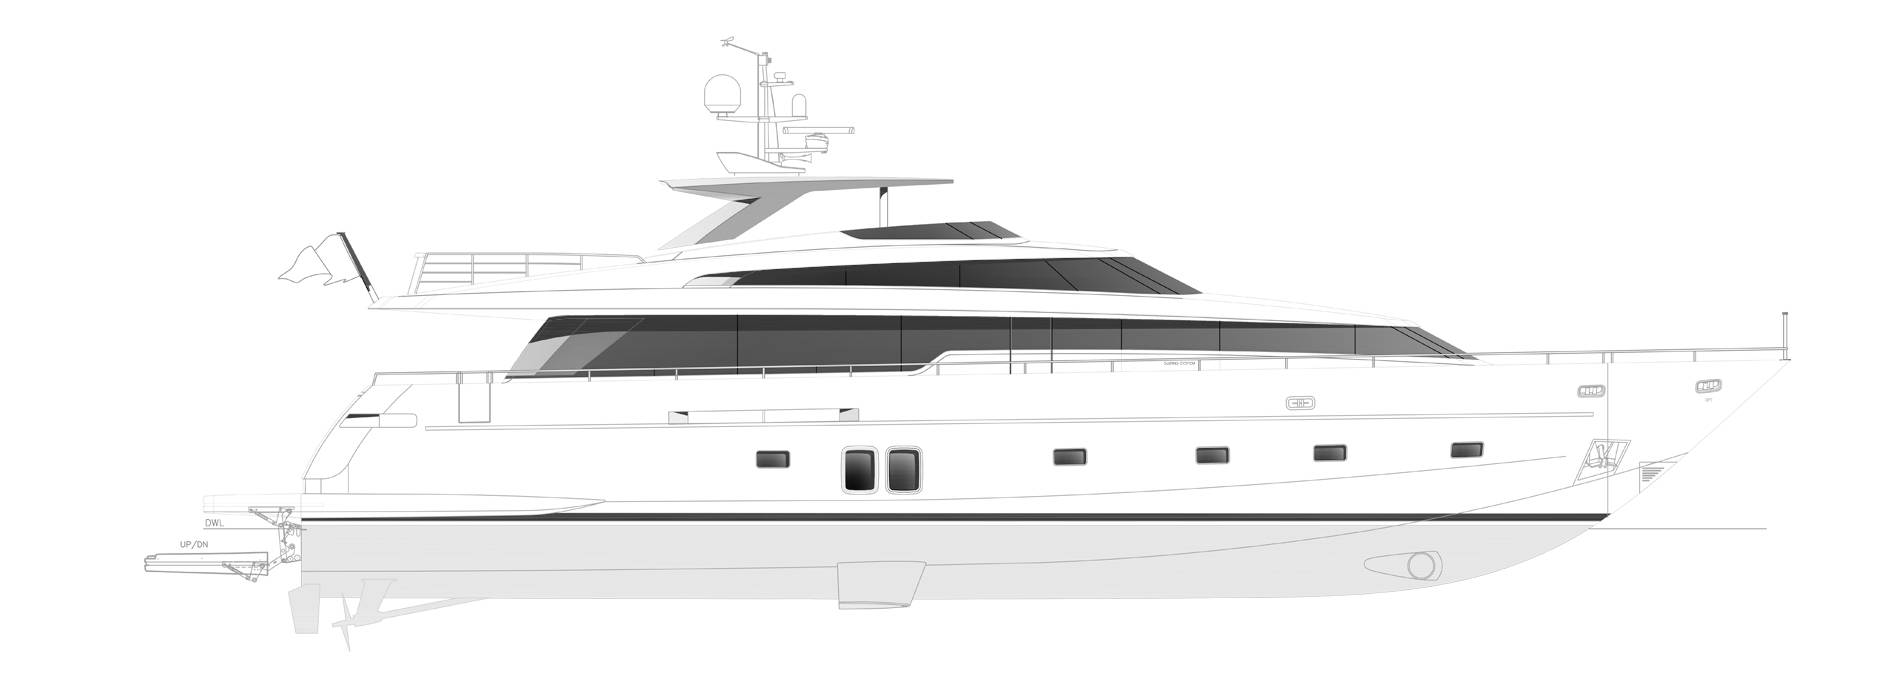 Sanlorenzo Yachts SL96-631 under offer Profile